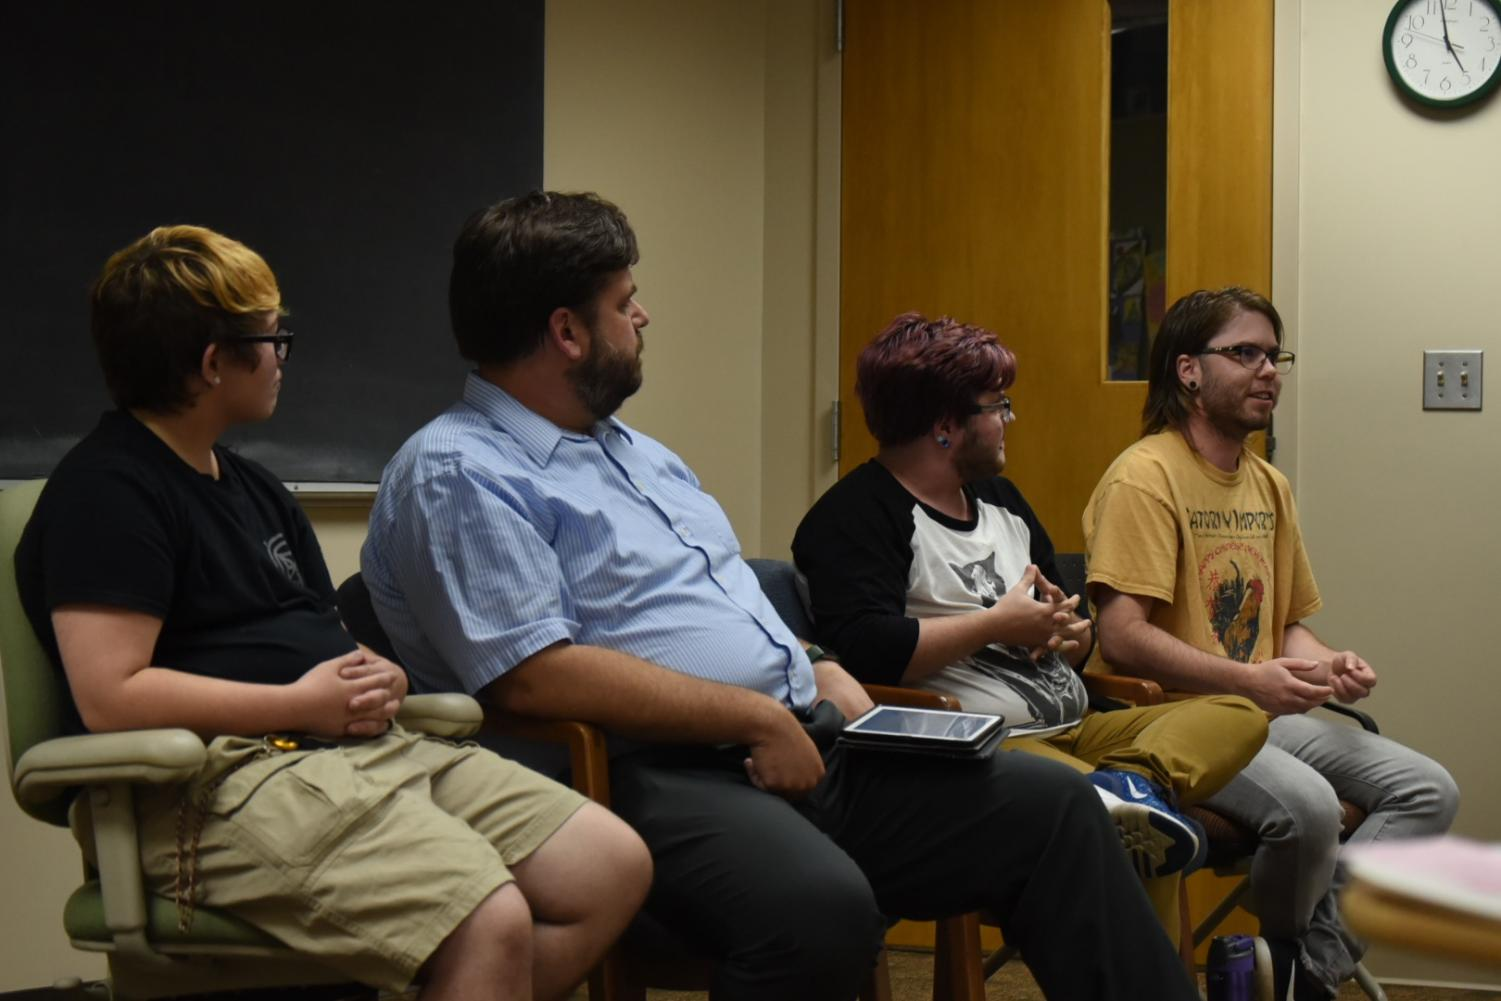 Panelists at Reeve union speak about LGBTQ discrimination in the workplace